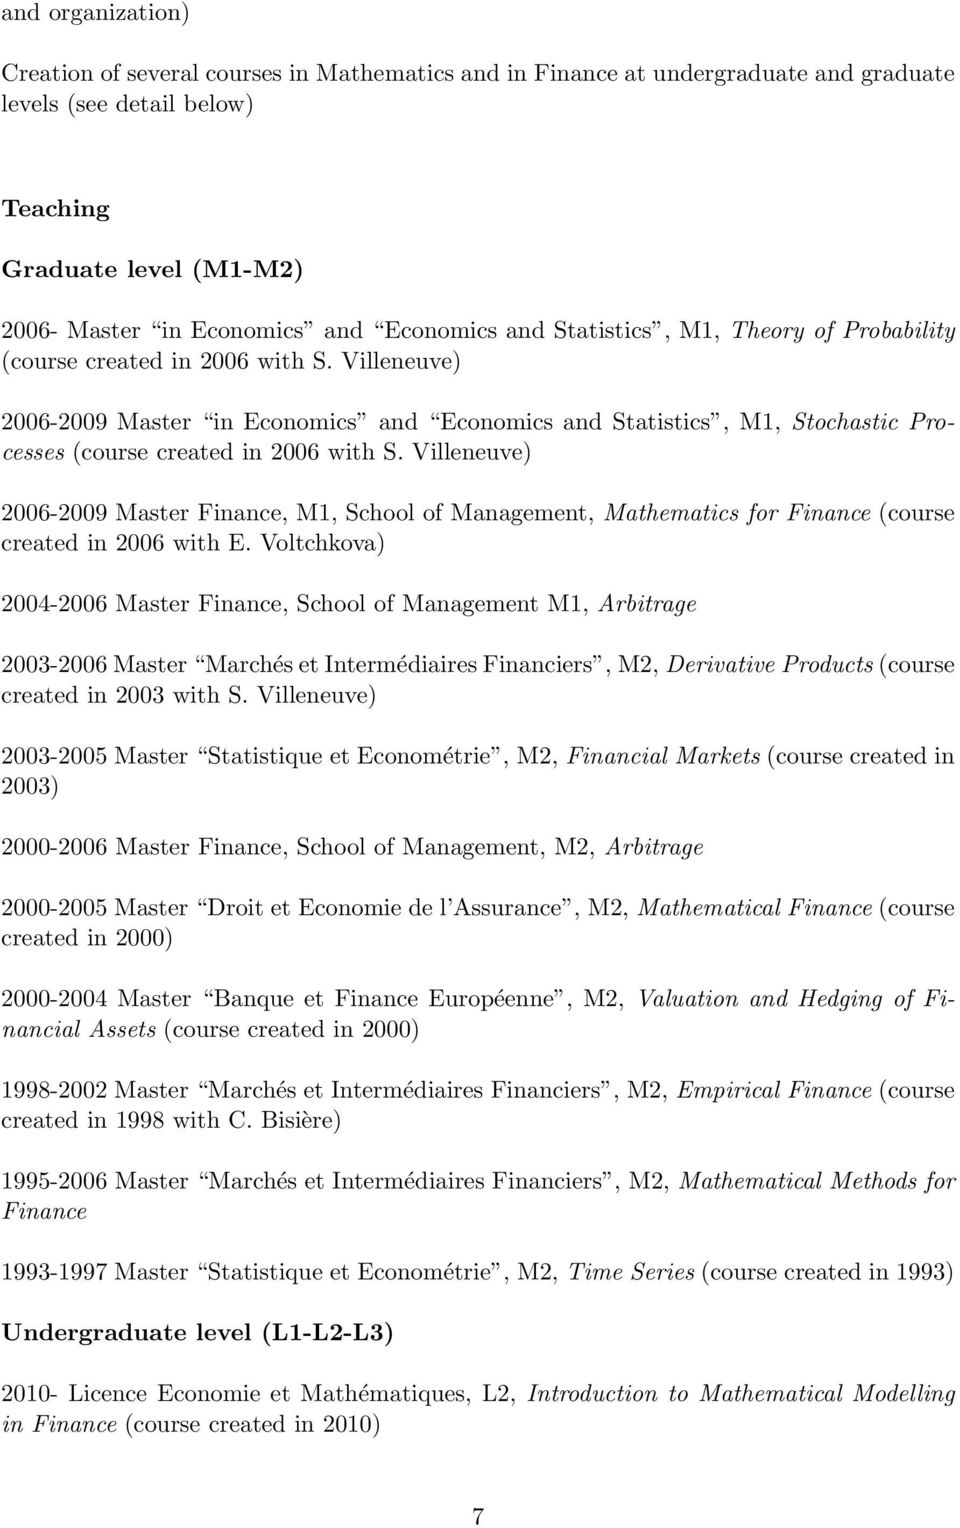 Villeneuve) 2006-2009 Master in Economics and Economics and Statistics, M1, Stochastic Processes (course created in 2006 with S.